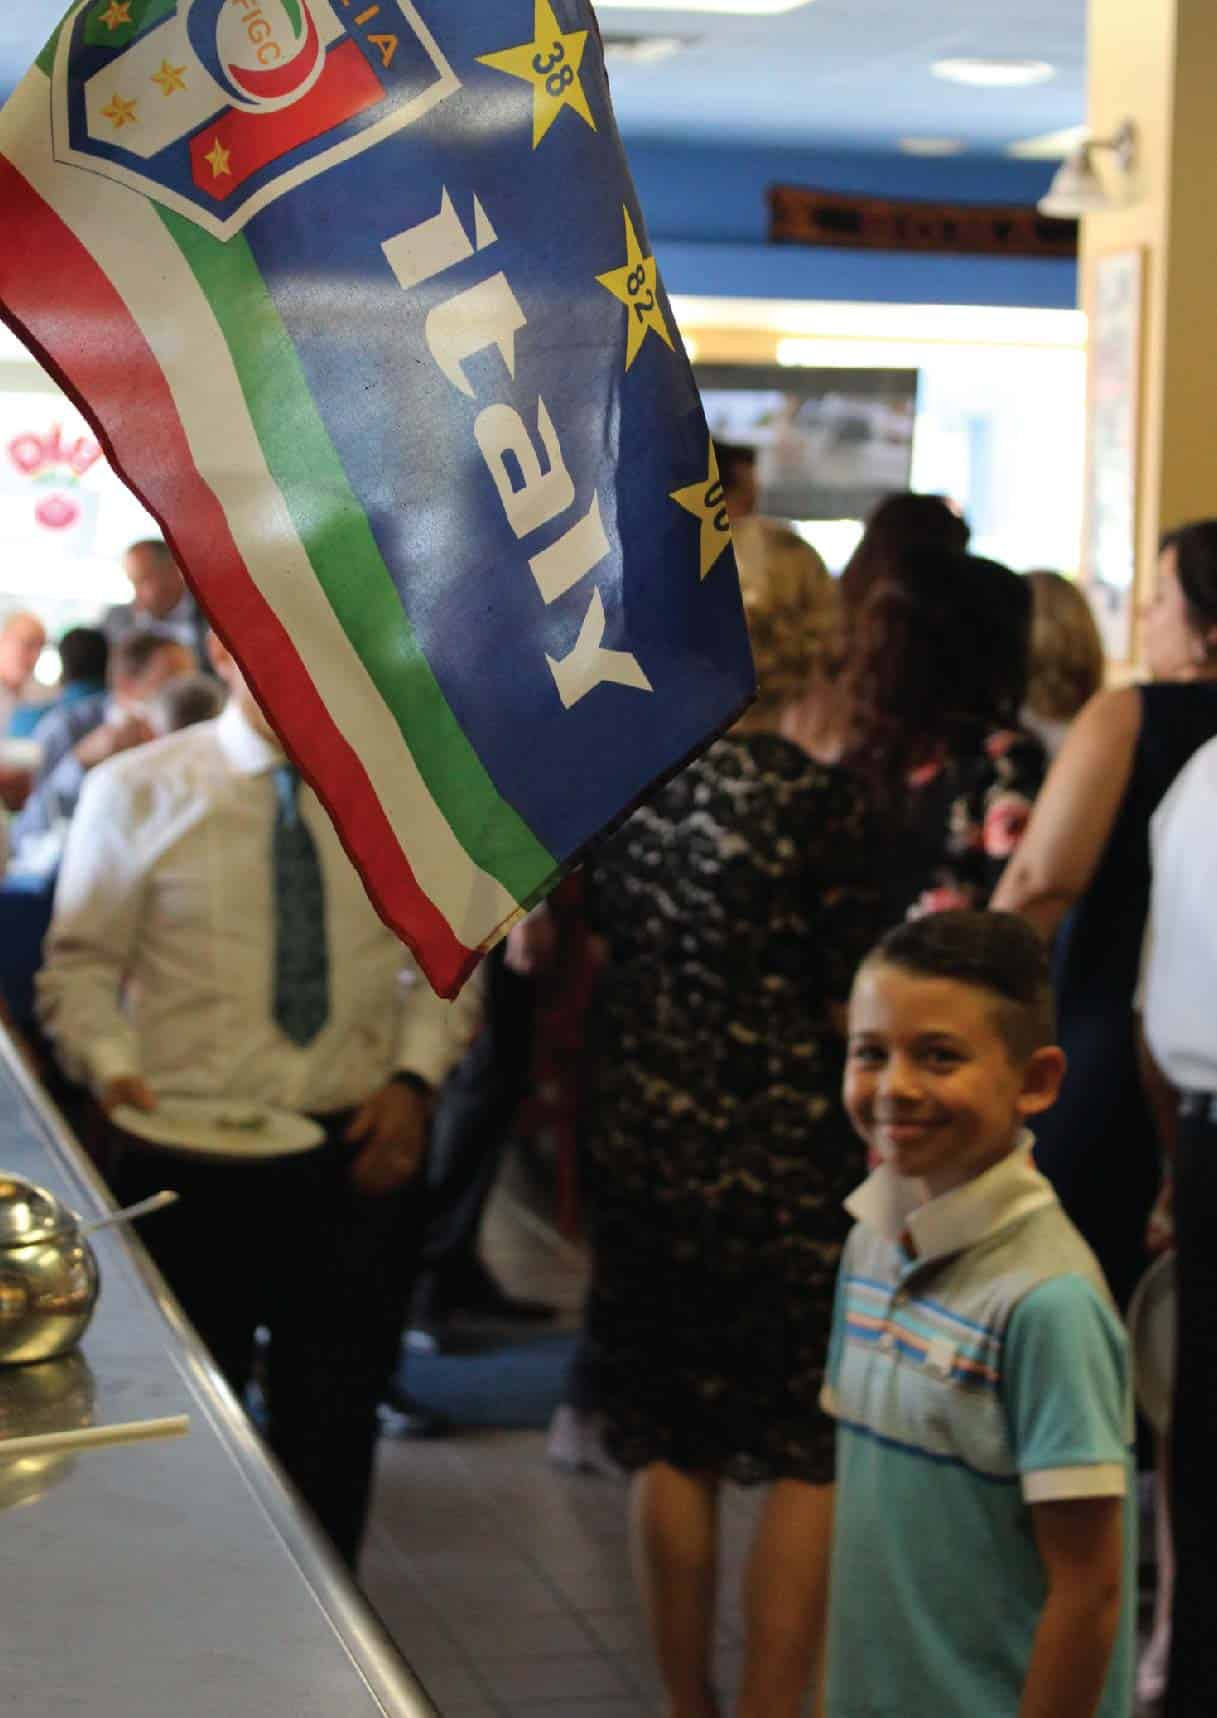 YOUNG BOY SMILING BESIDE THE ITALIAN FLAG